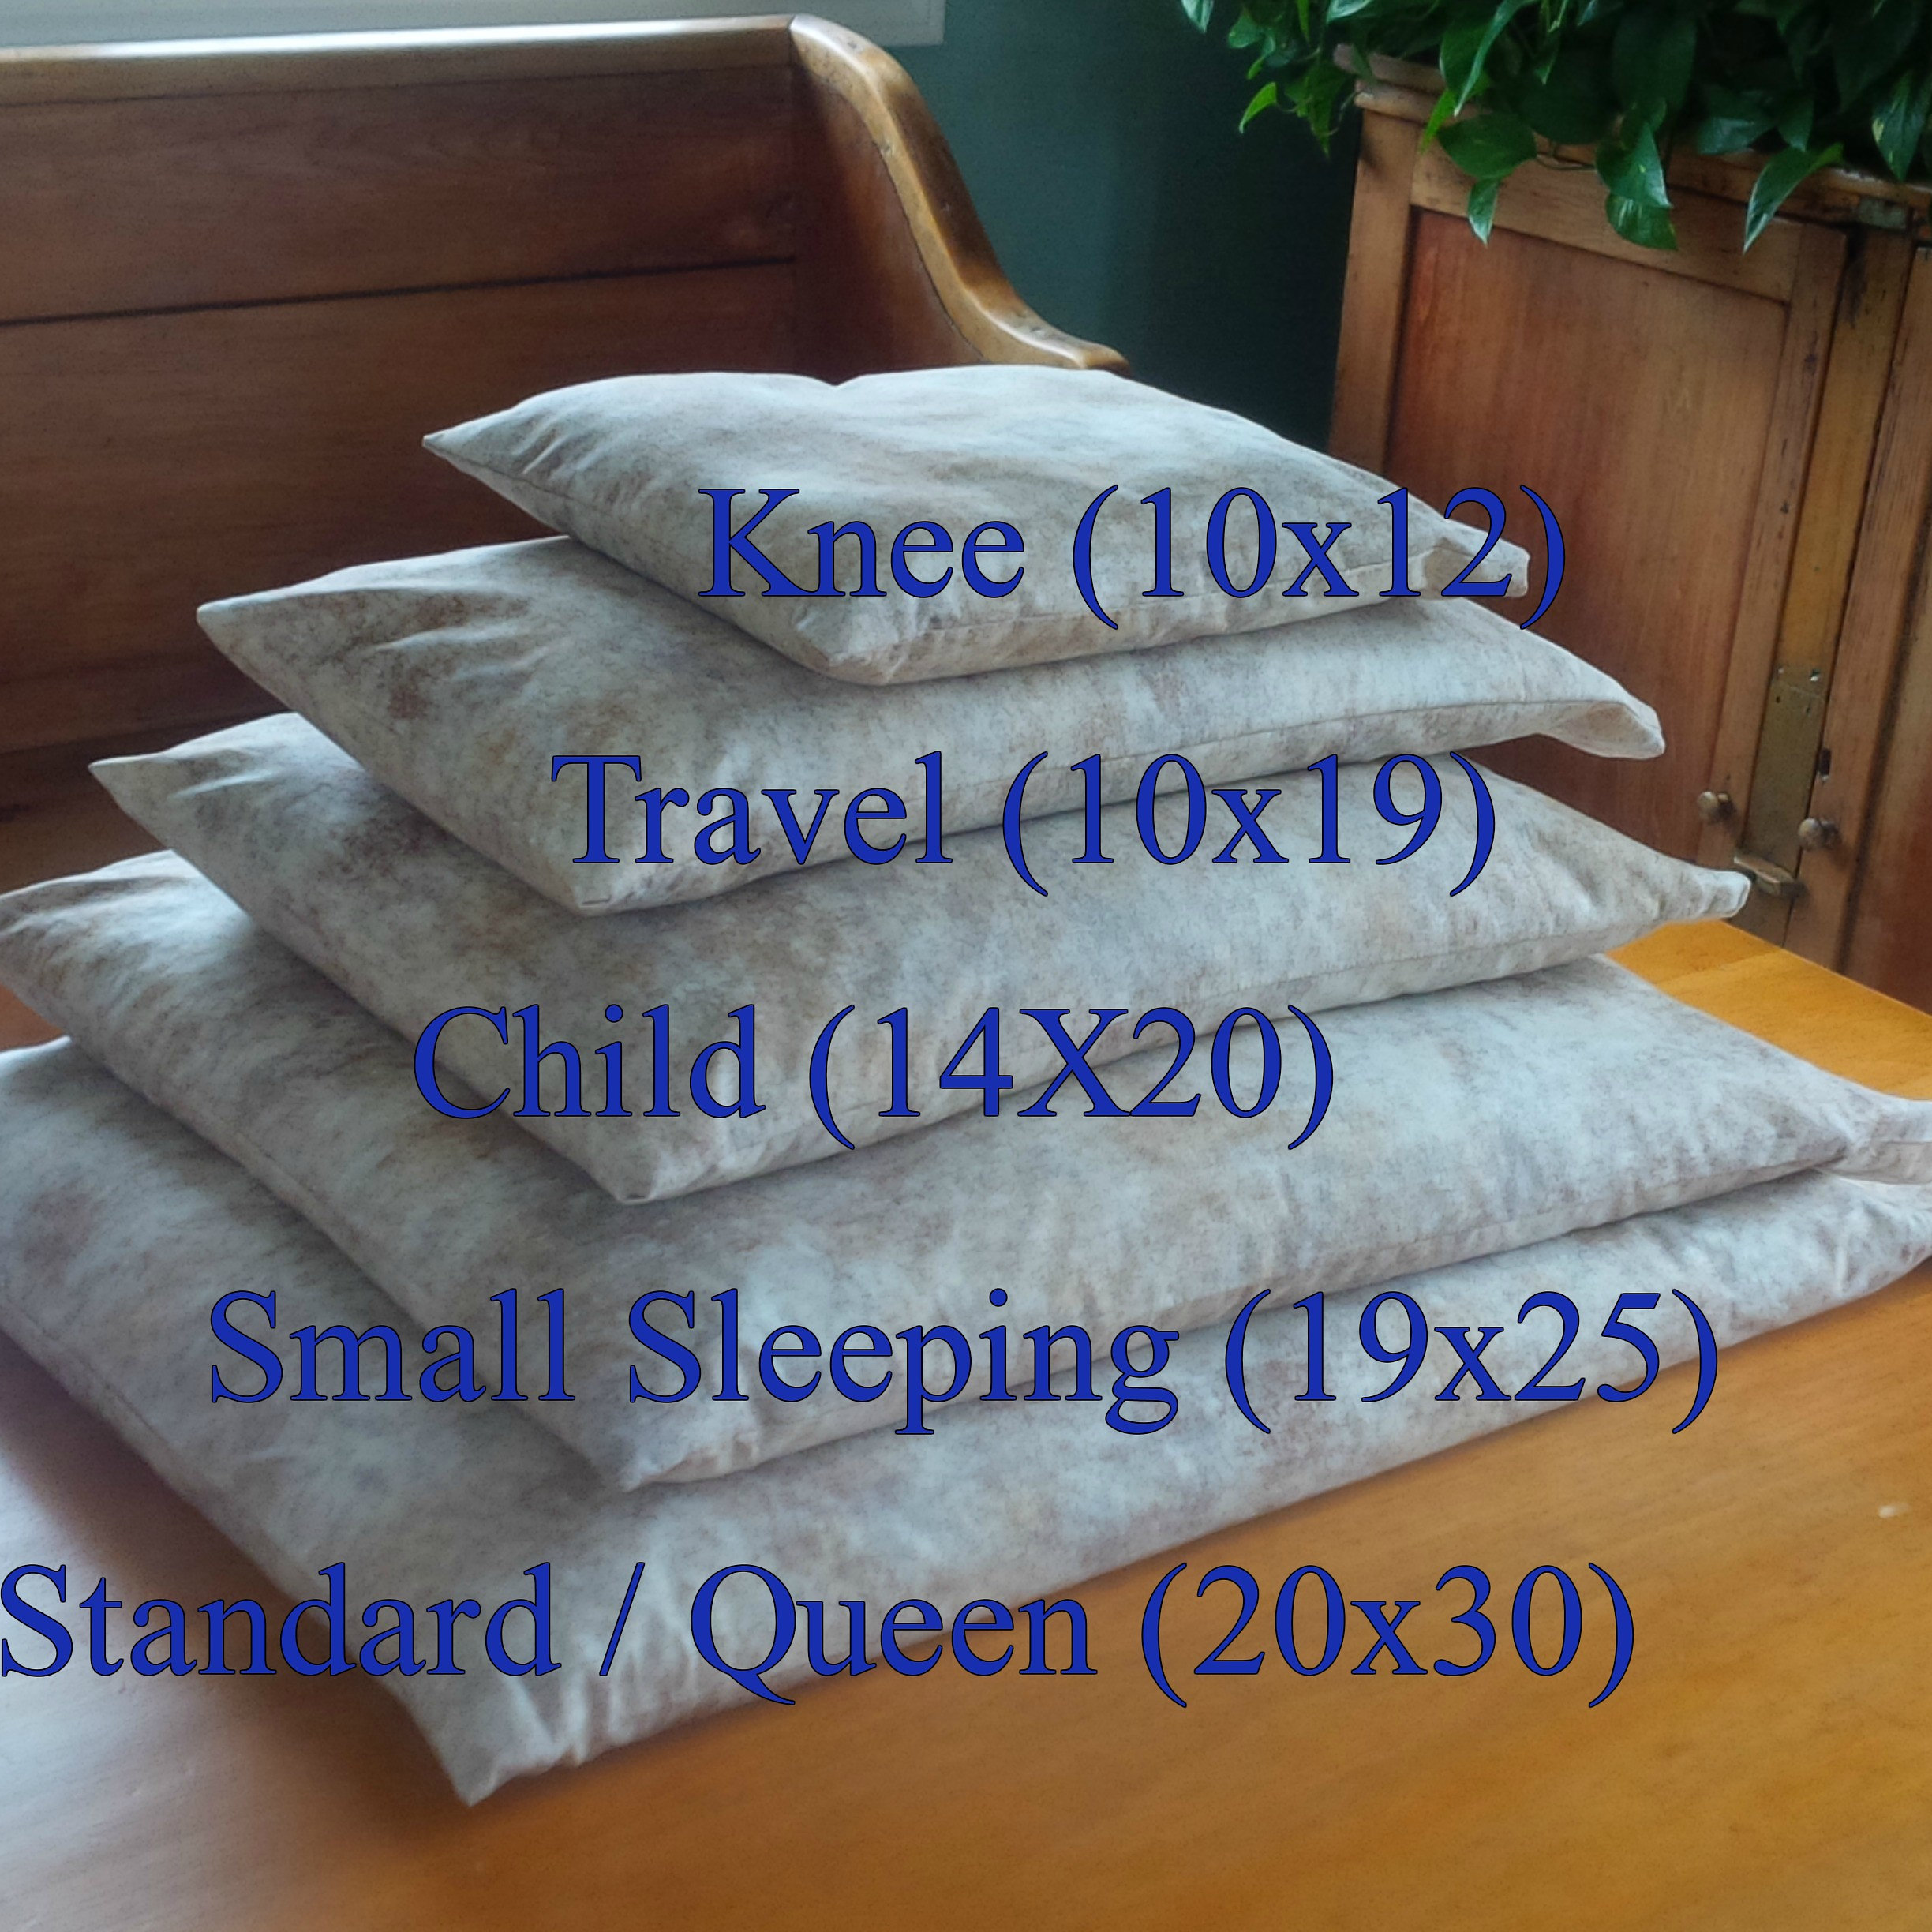 grown us pillow frs buckwheat furnishings lotus home natural hulls organic wholesale optimized no white usa handcrafted the in bedding pillows